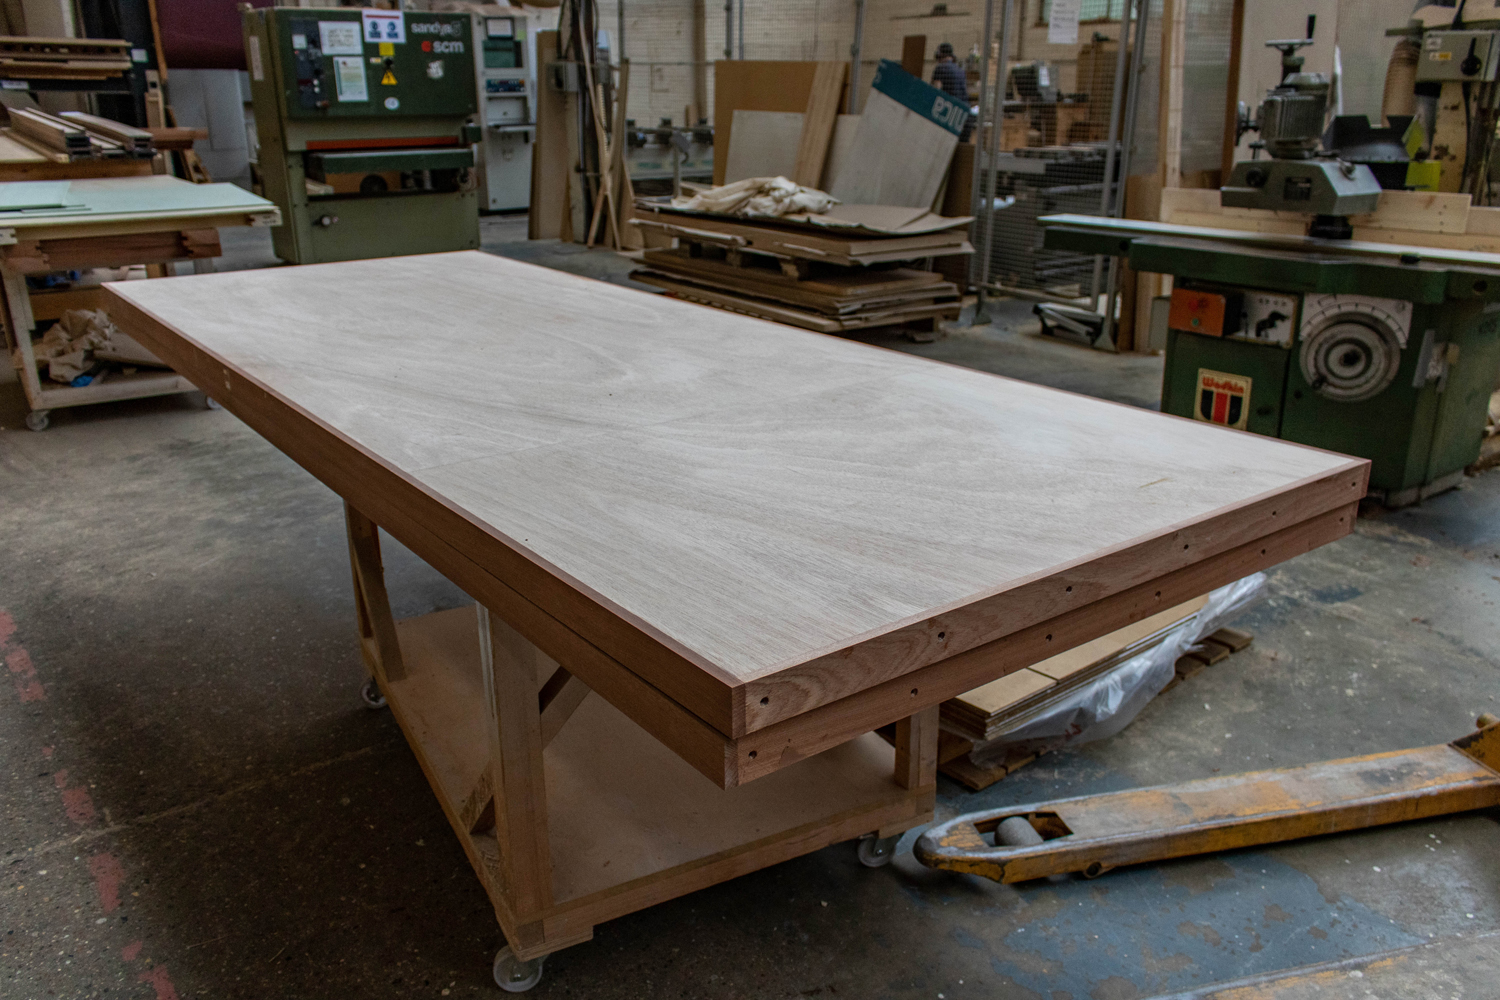 wooden panel k&d joinery workshop london